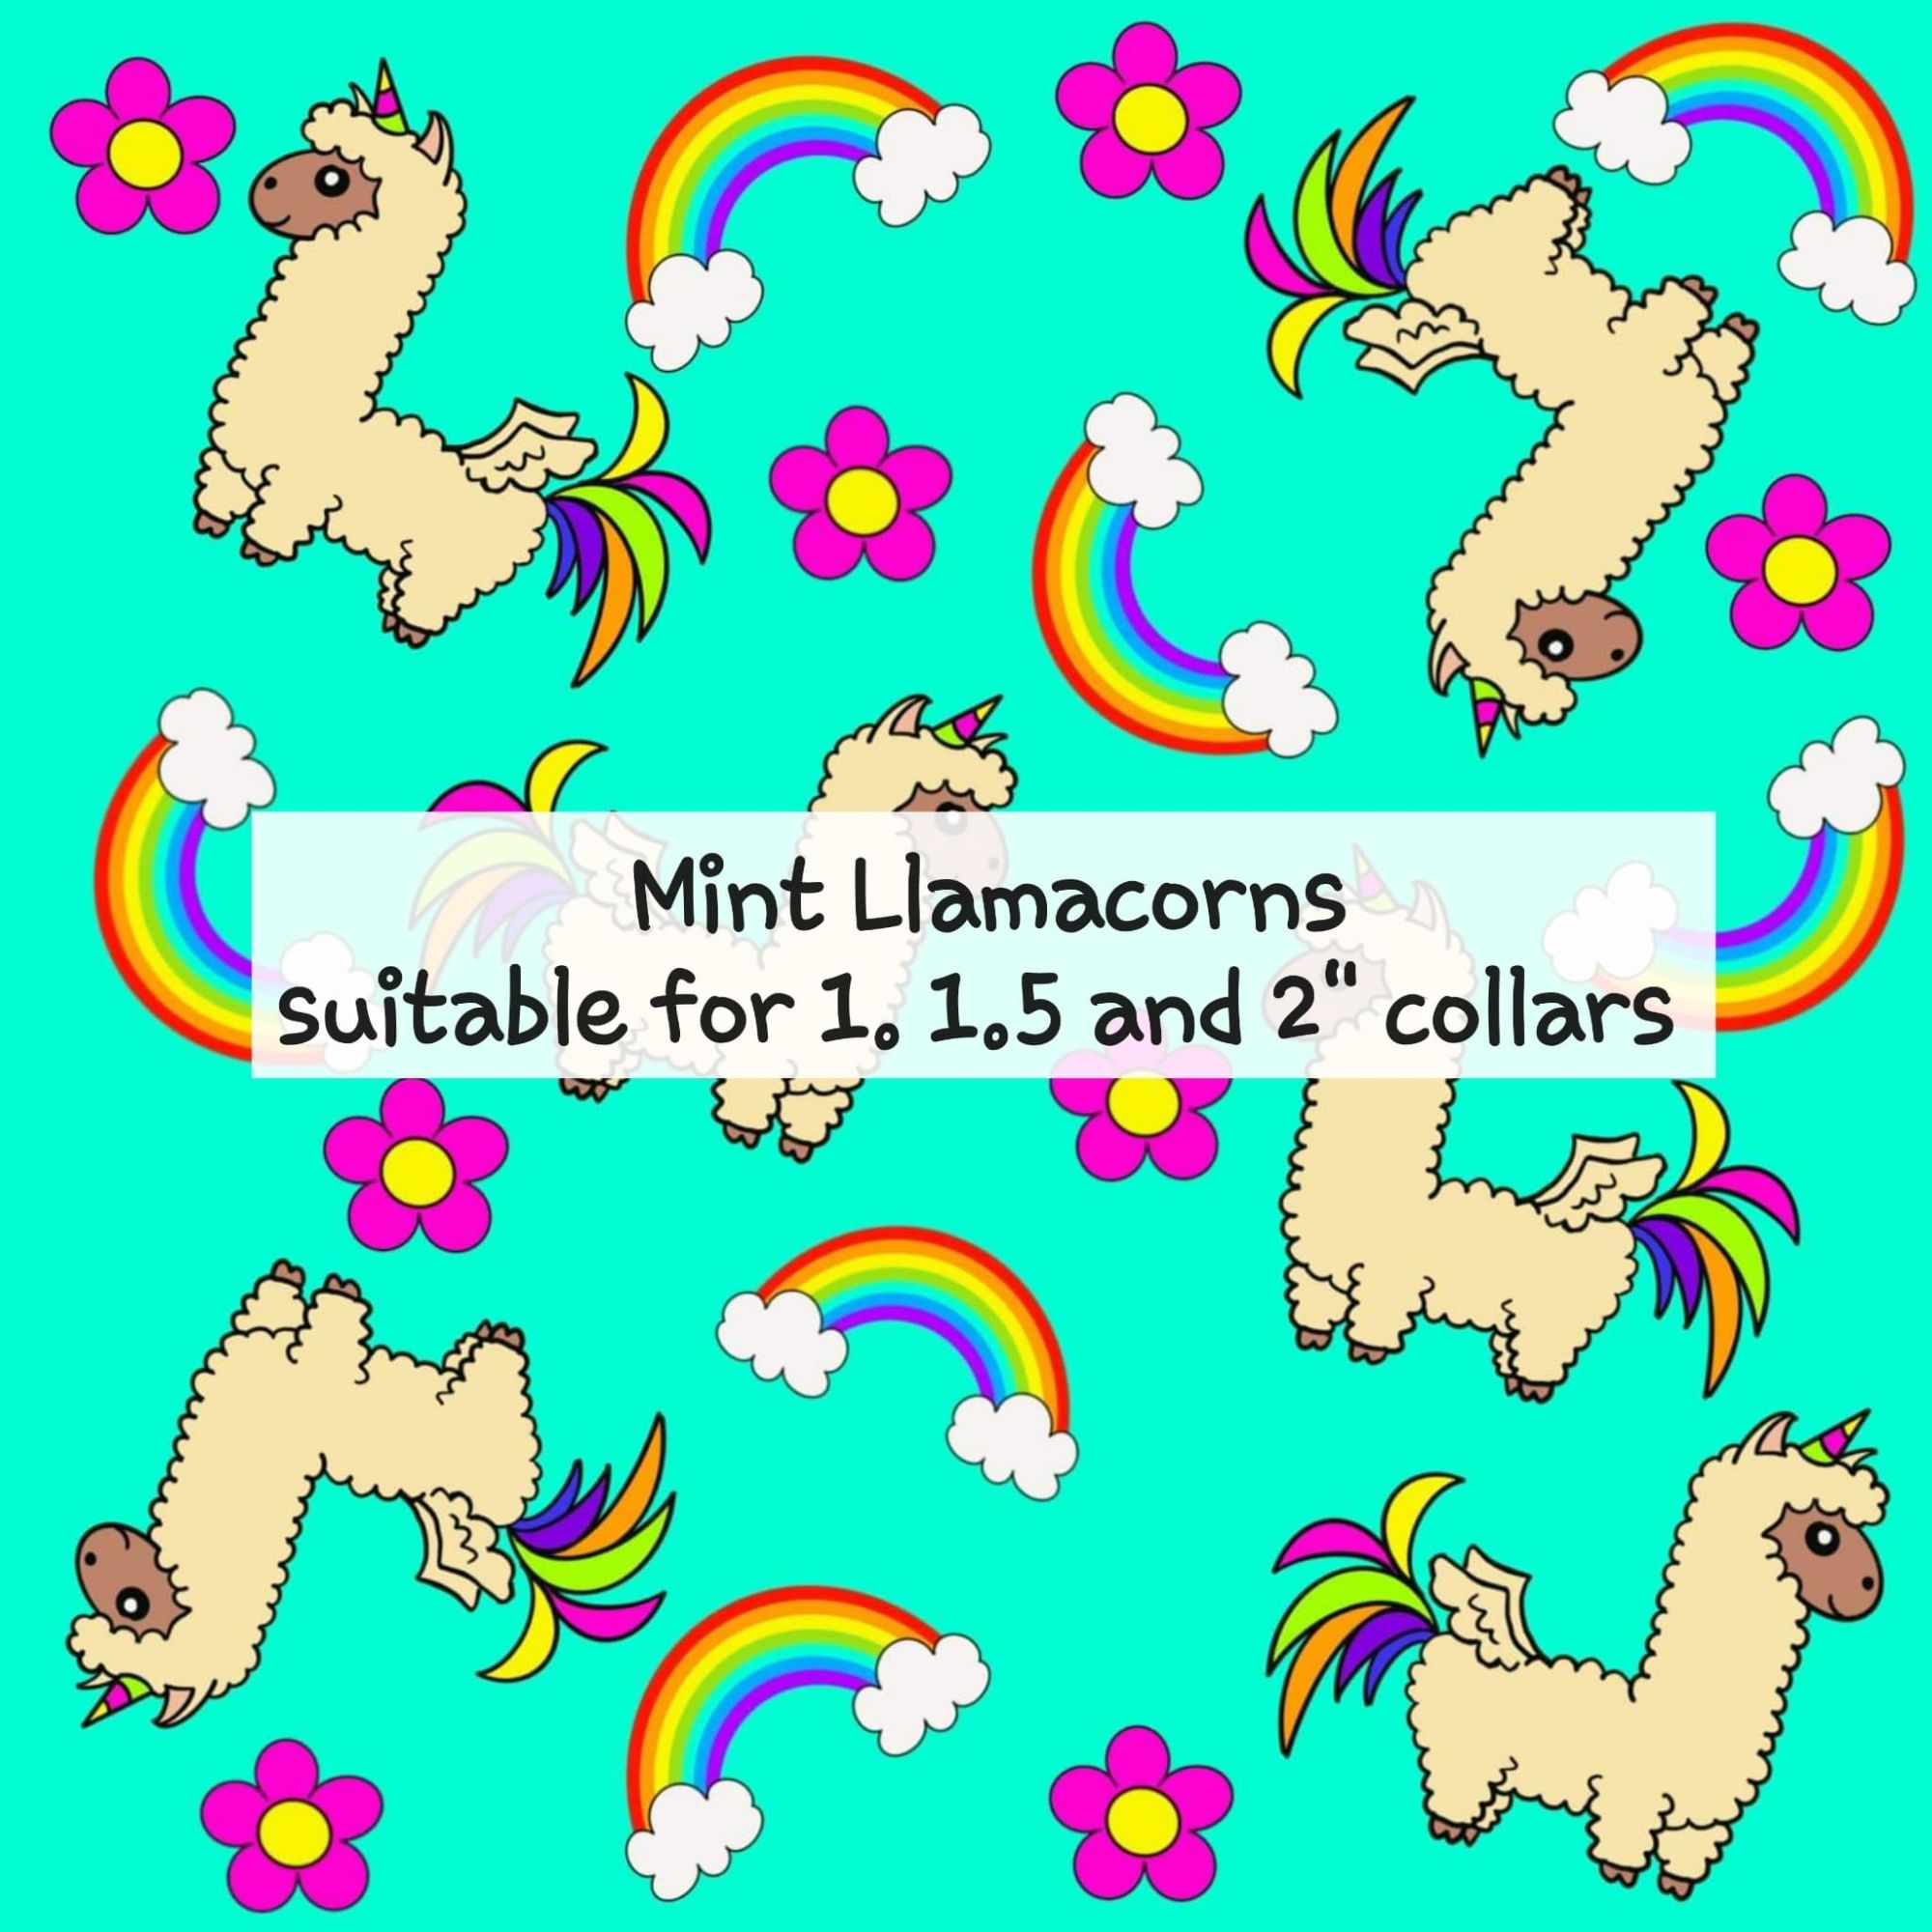 Mint Llamacorns - Suitable for 1, 1.5 and 2 inch collars